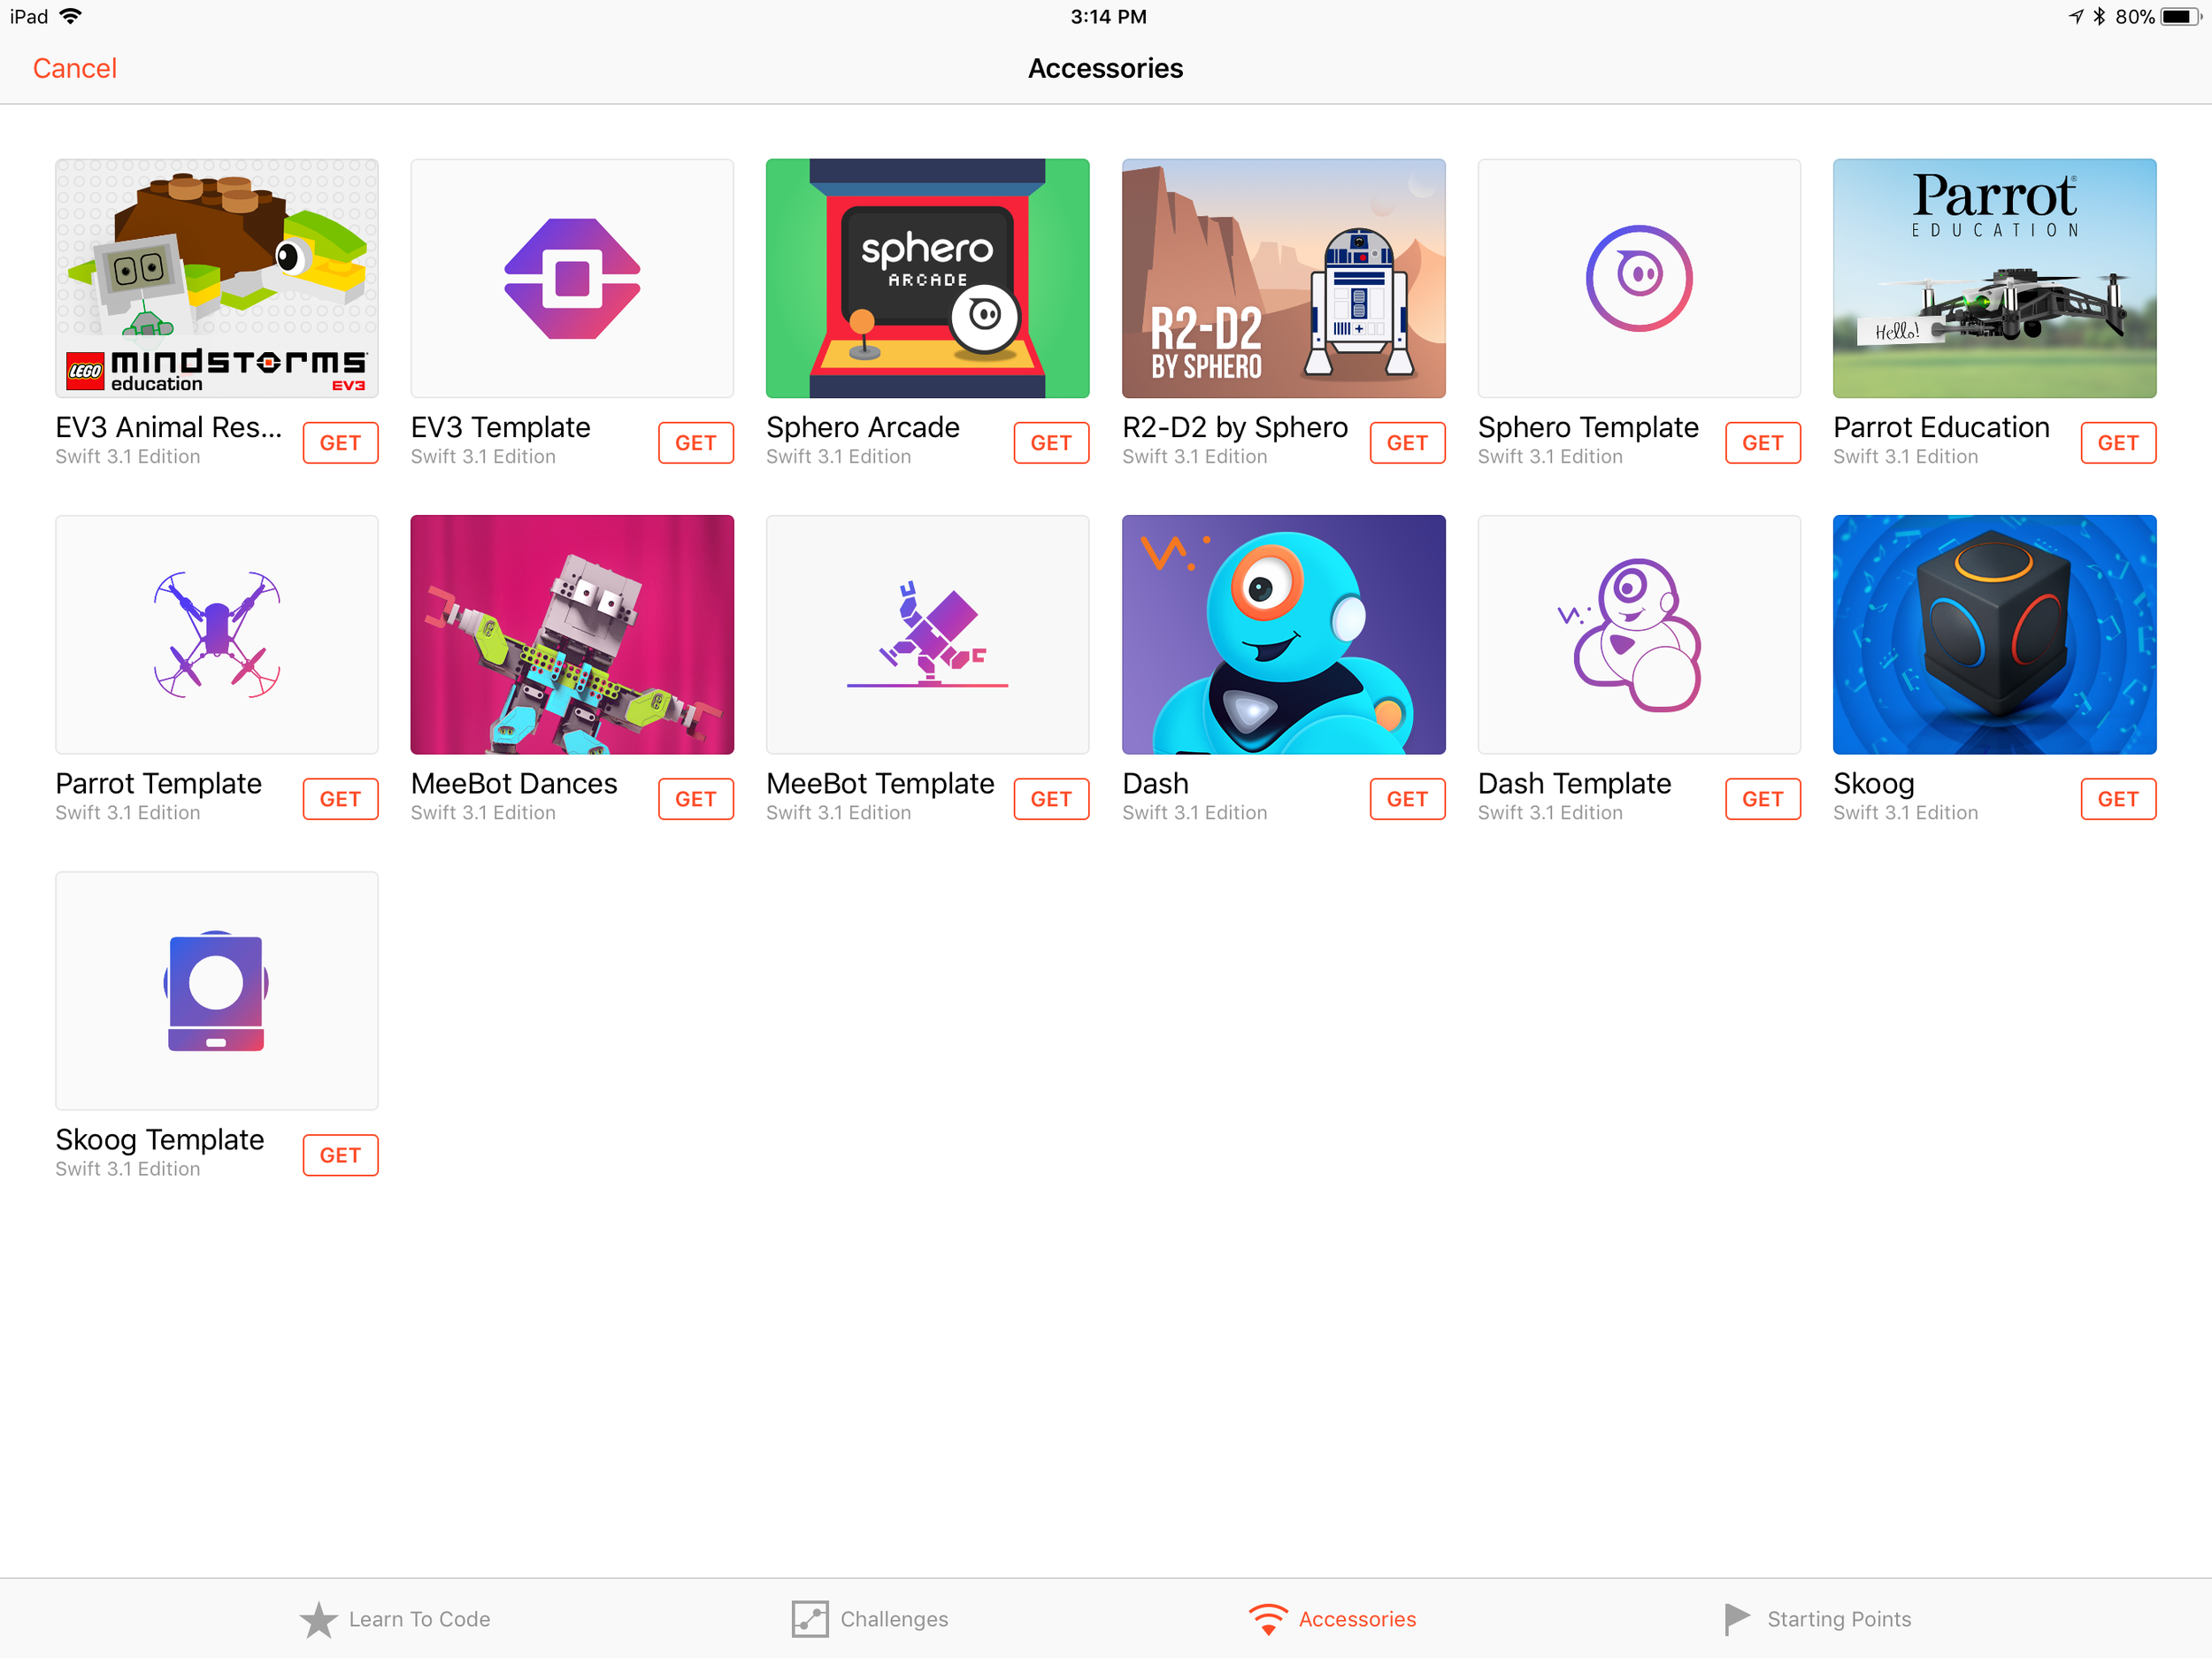 You will find The Droid Inventor Kit is not pre-installed on Swift Playgrounds